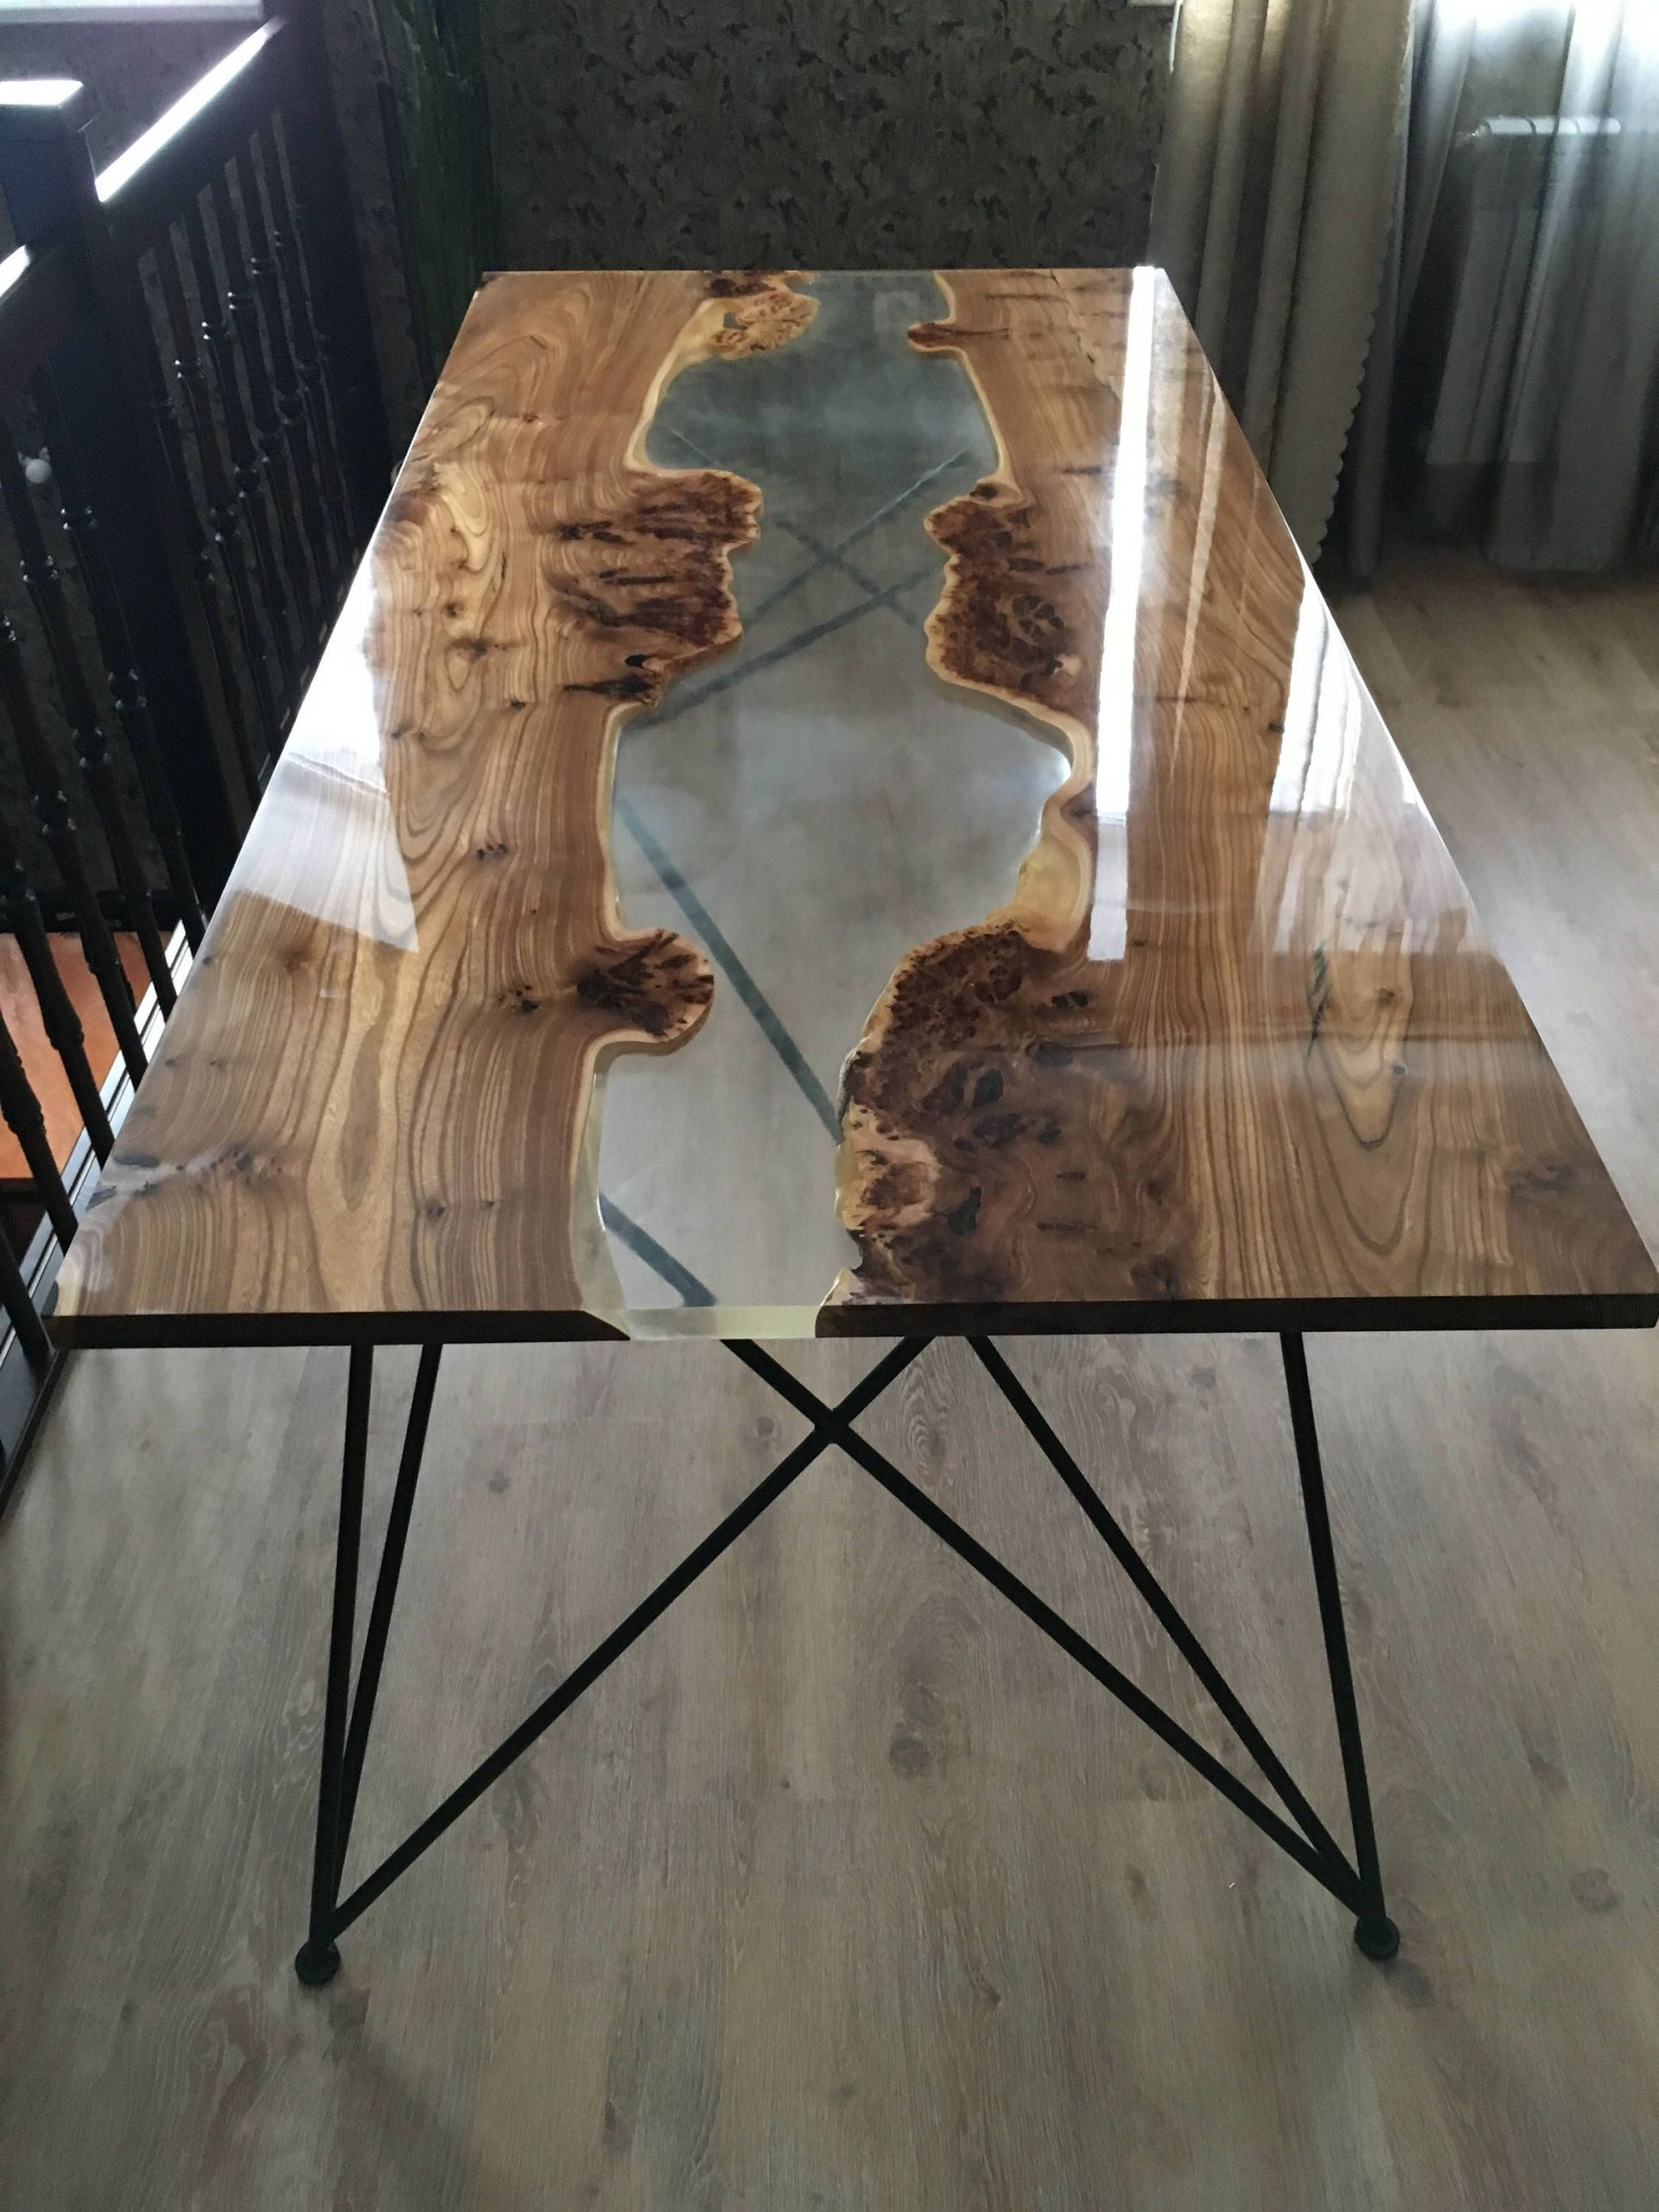 Table Resine Nouveau Epoxy Resin Table Of 33 Inspirant Table Resine